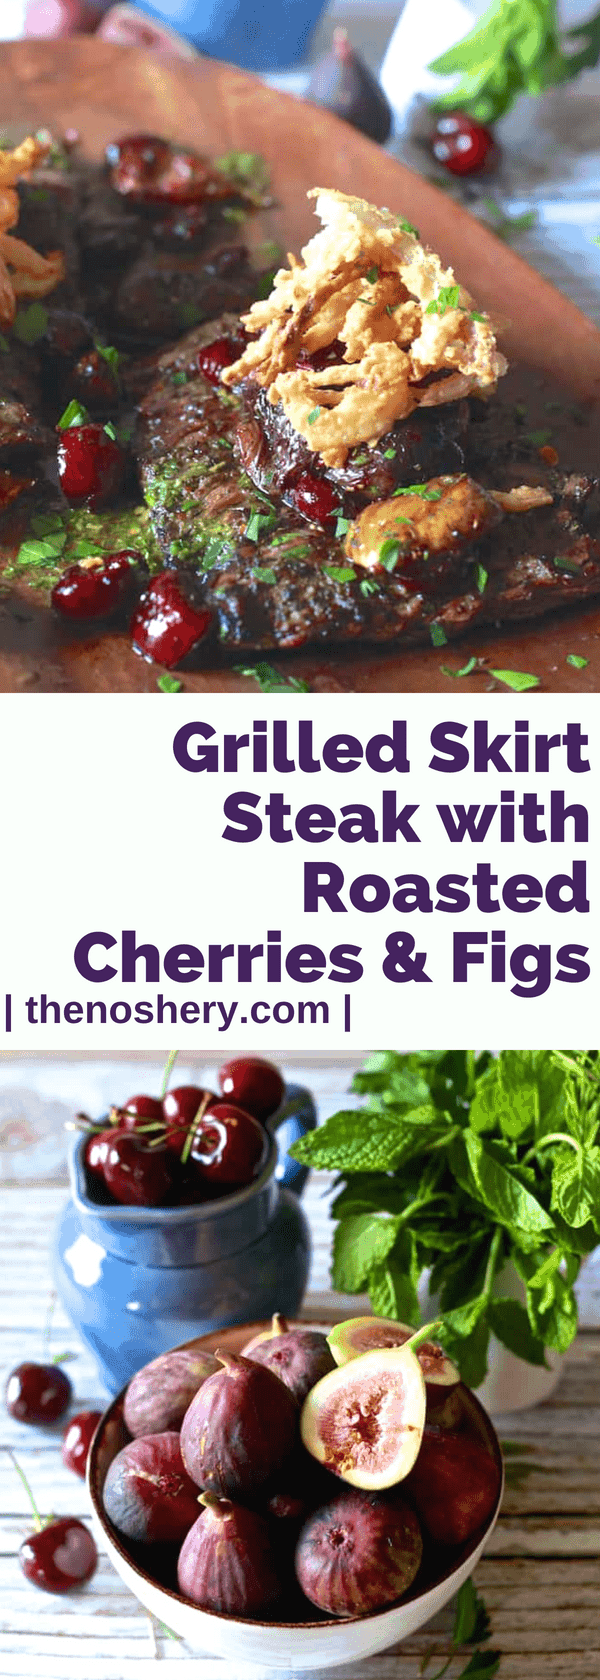 Grilled Skirt Steak with Roasted Cherries & Figs | Sweet and tart roasted summer fruits over marinated and grilled skirt steak, topped with crispy onions. | The Noshery